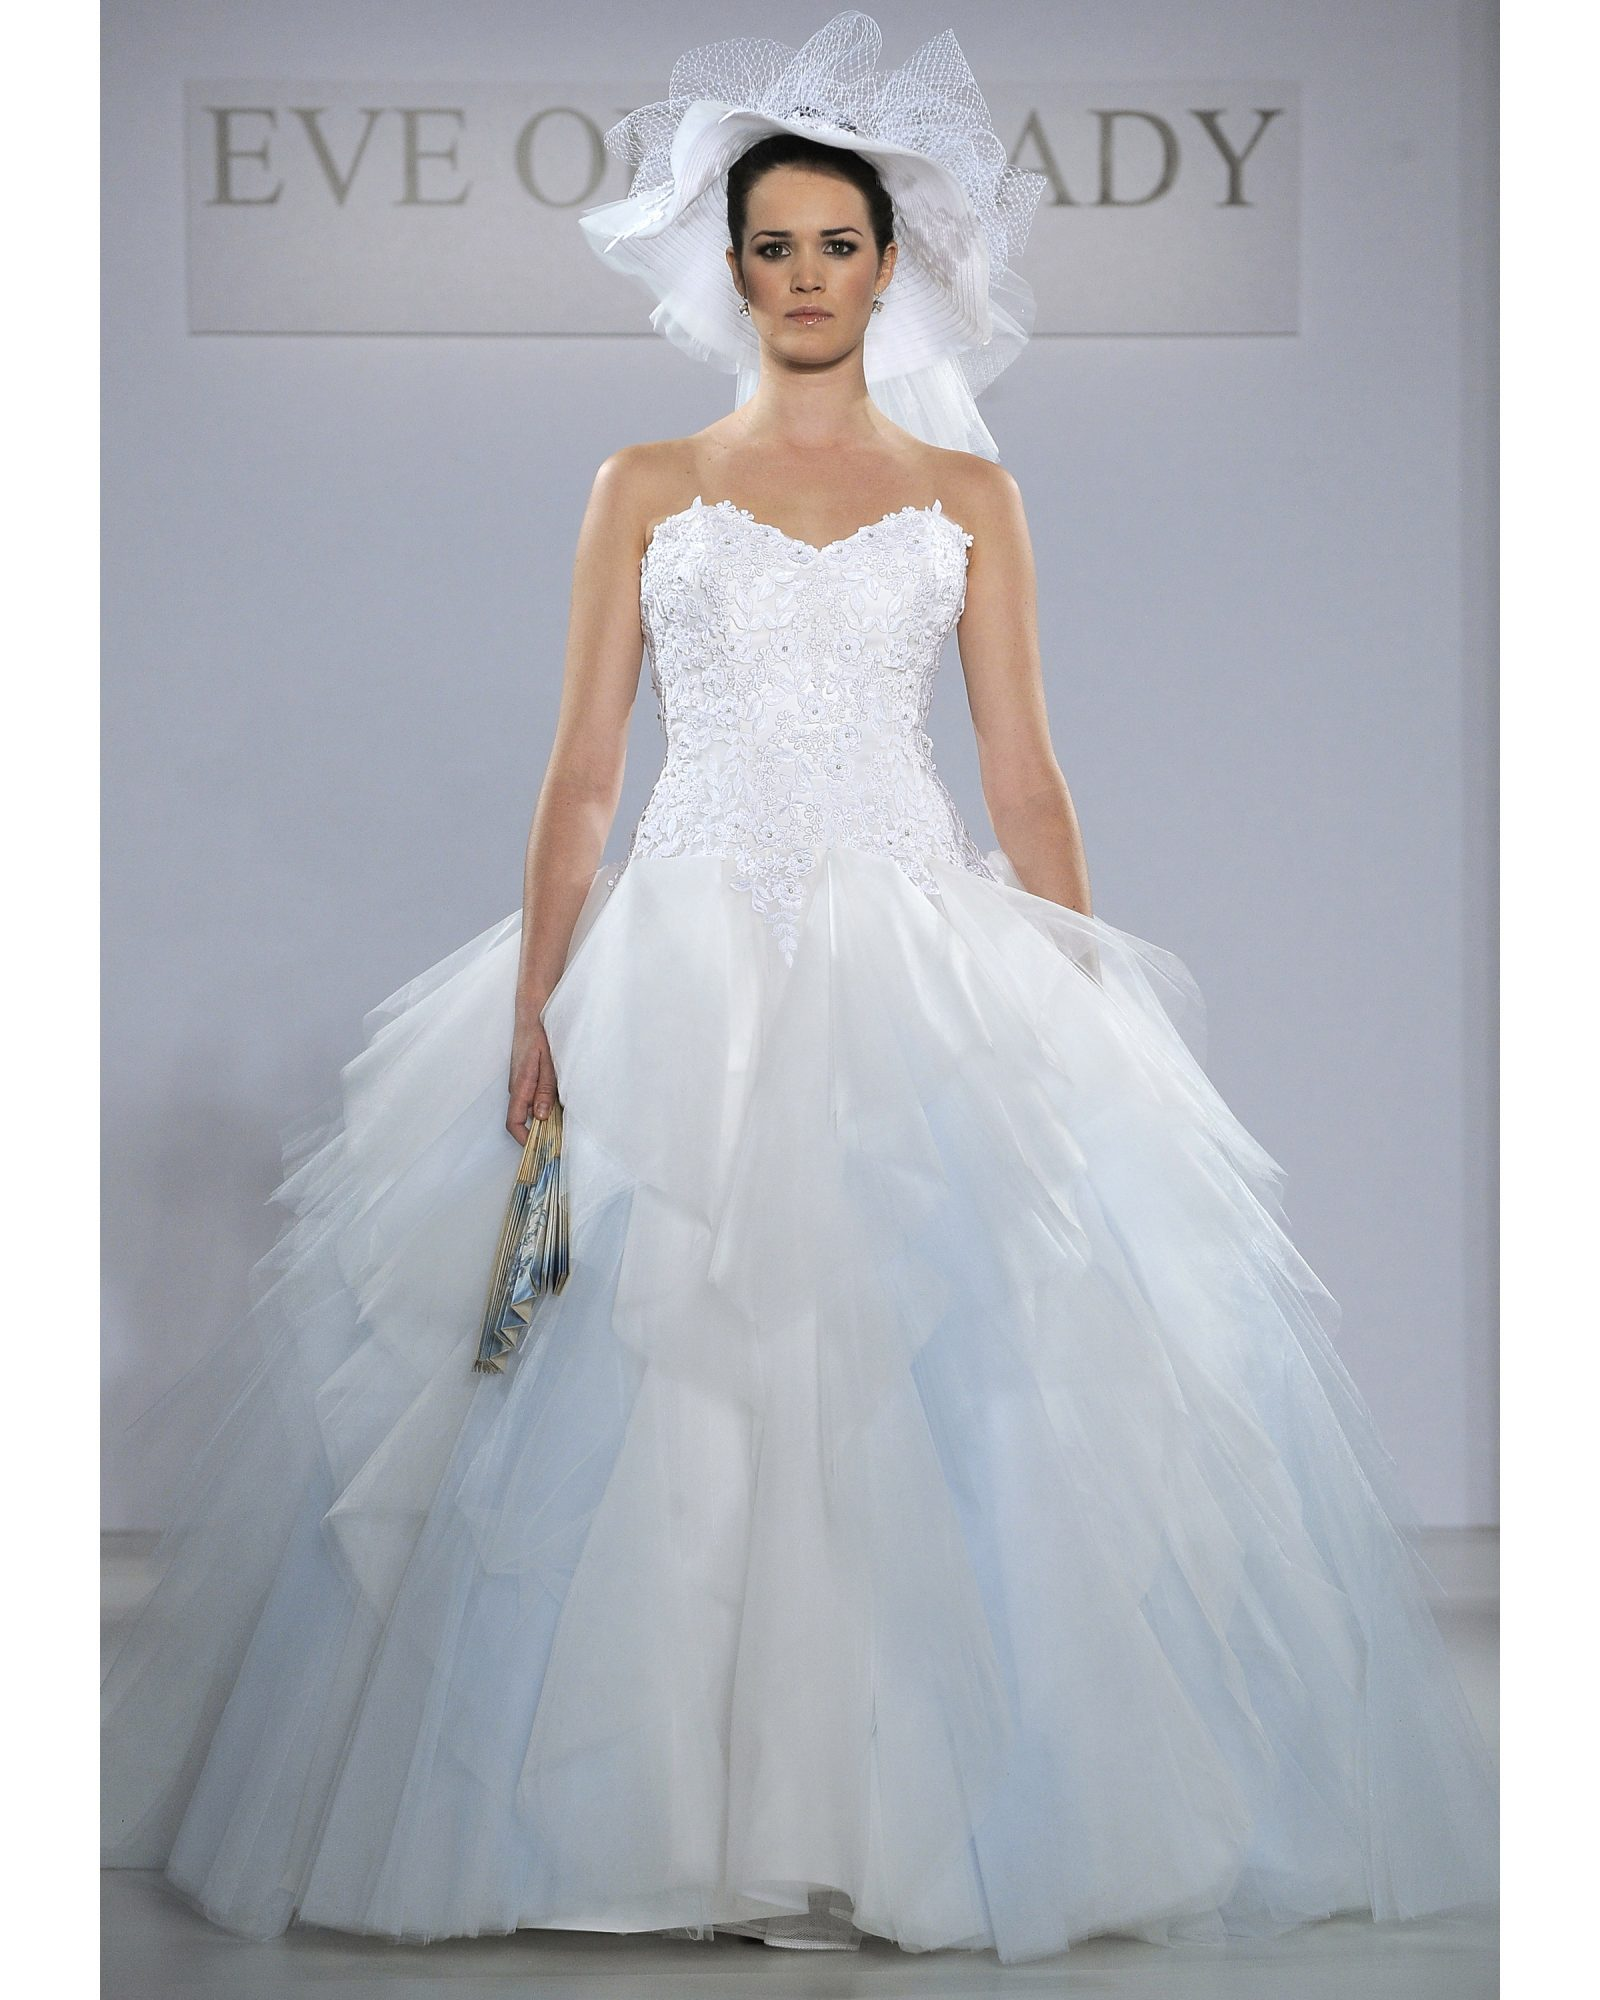 Blue-and-White Ball Gown